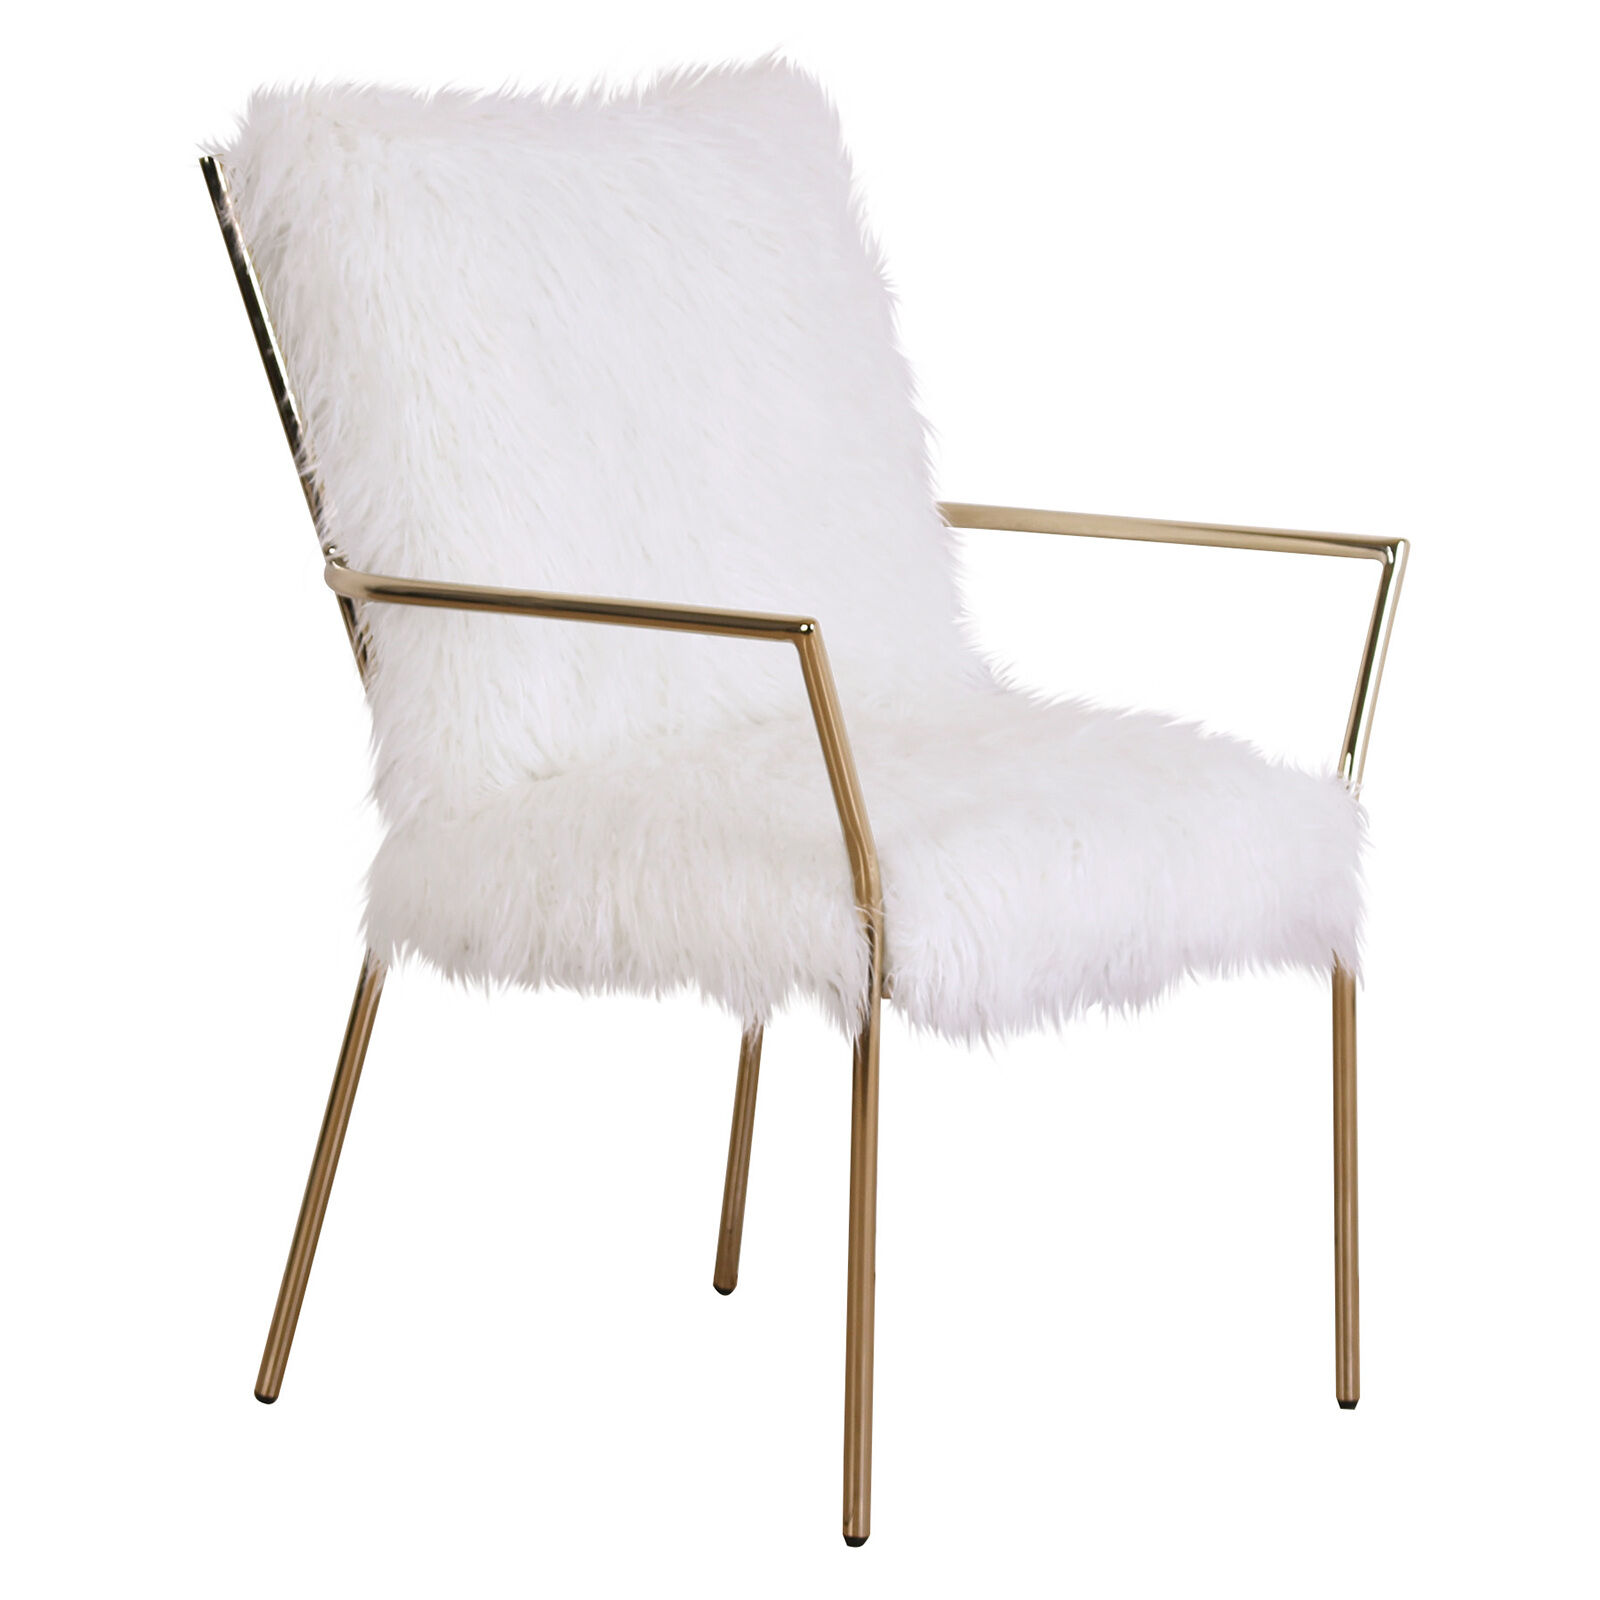 Furry Chairs Alexis Gold Fur Chair At Home